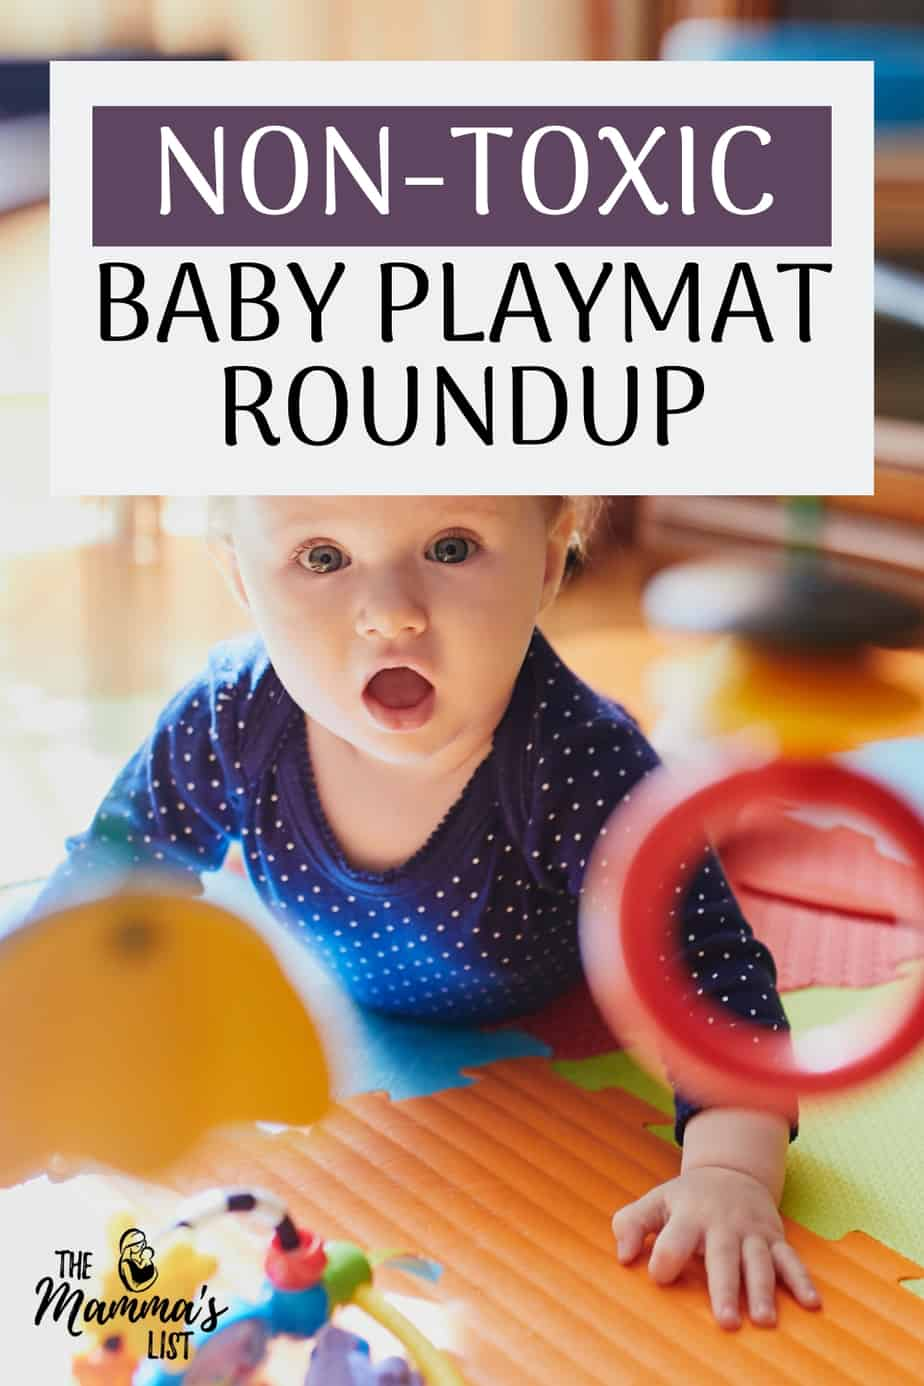 Non-toxic baby playmat roundup and review of the babycare baby playmat. Keep your baby and toddlers healthy with a non-toxic baby playmat. Click through for a roundup of all the non-toxic baby playmats I could find, and our recommended choice!